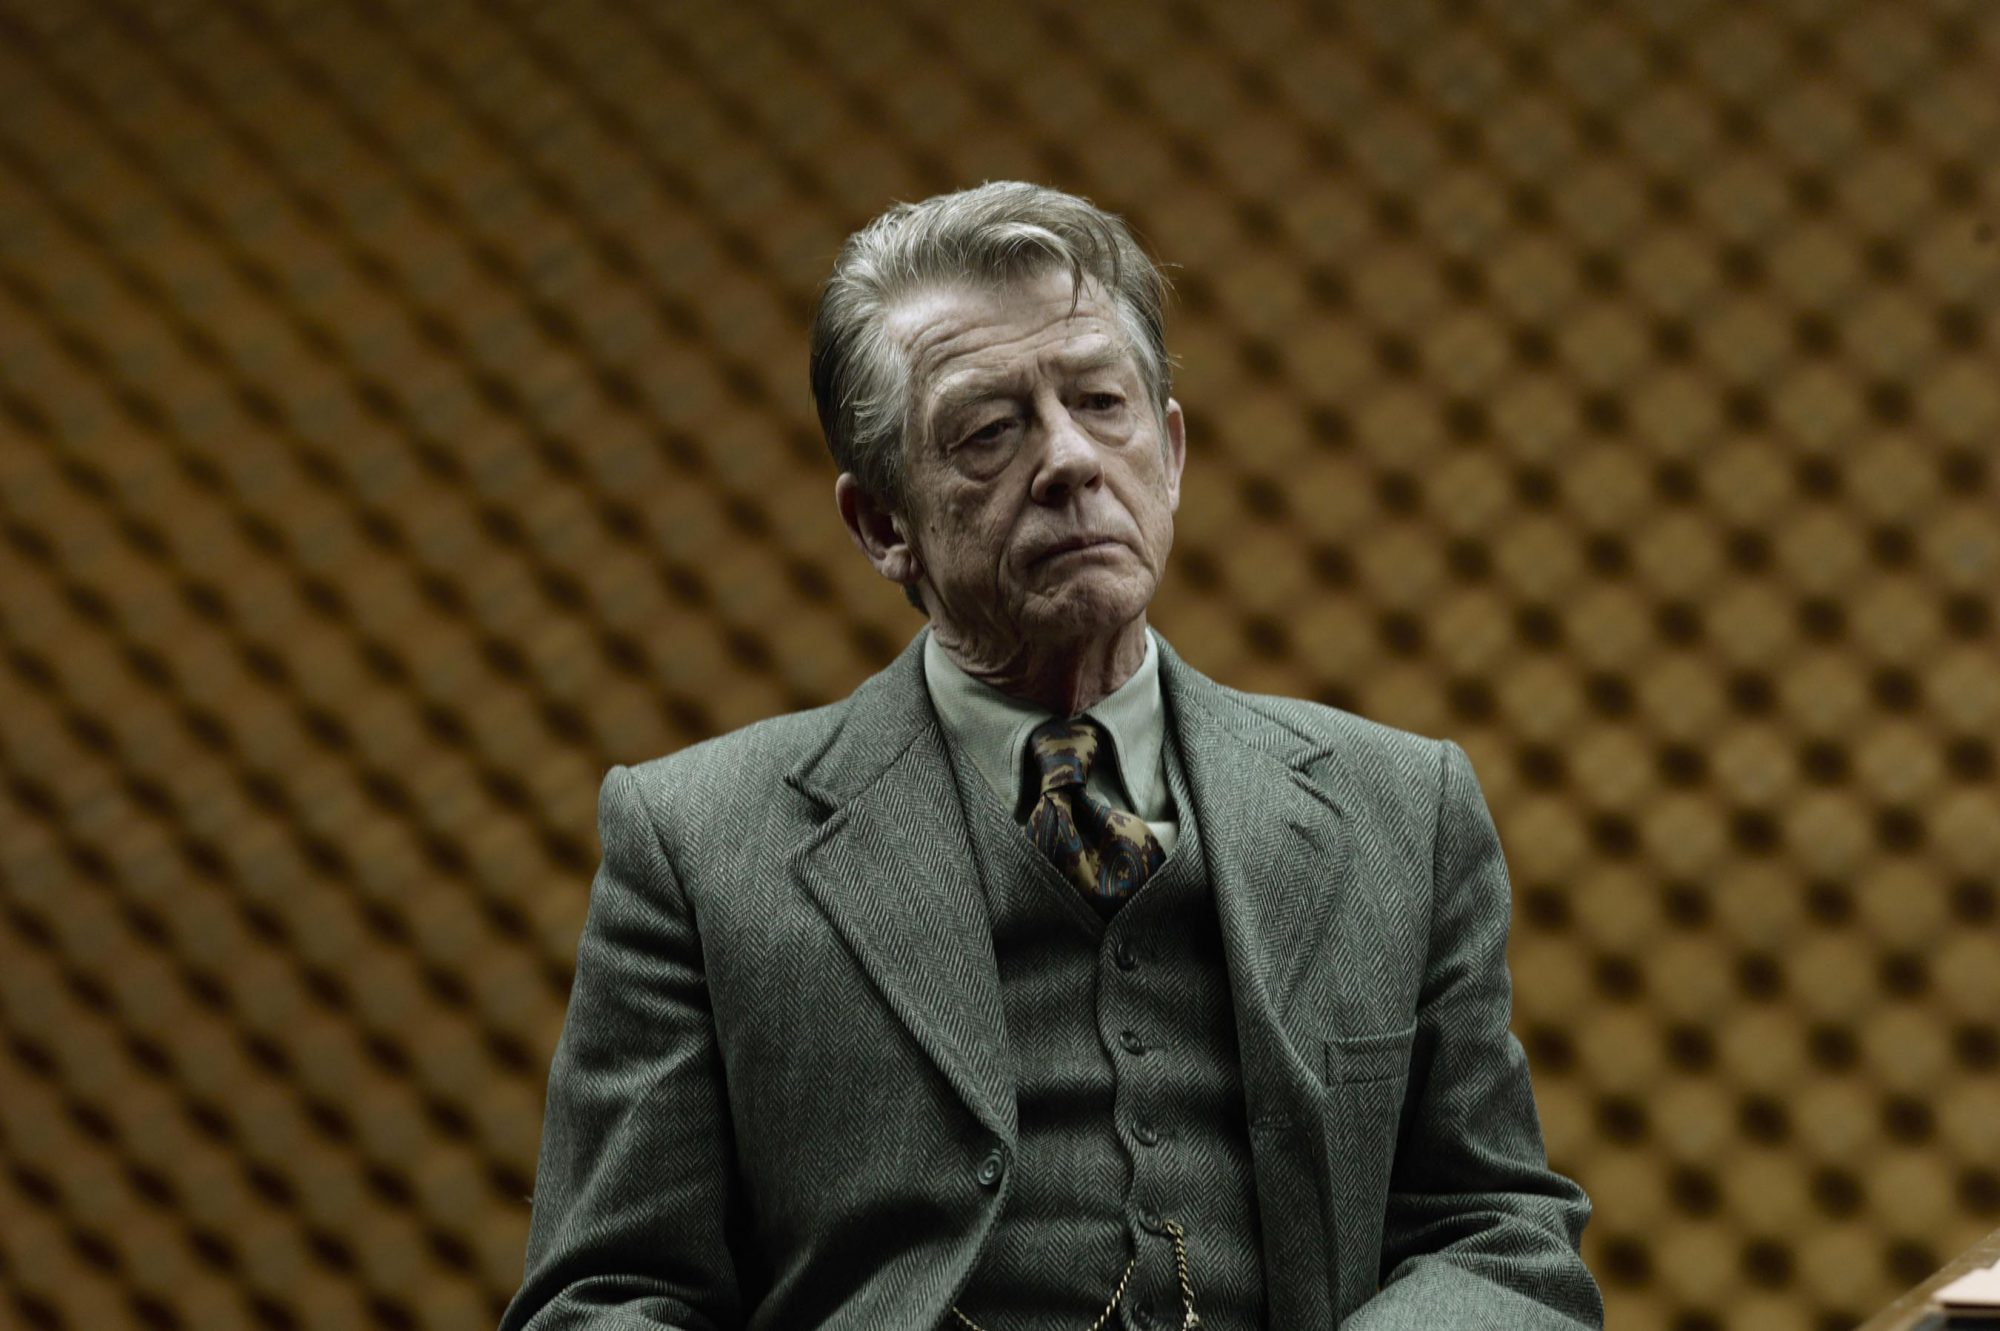 TINKER TAILOR SOLDIER SPY, John Hurt, 2011. ph: Jack English/©Focus Features/Courtesy Everett Collec